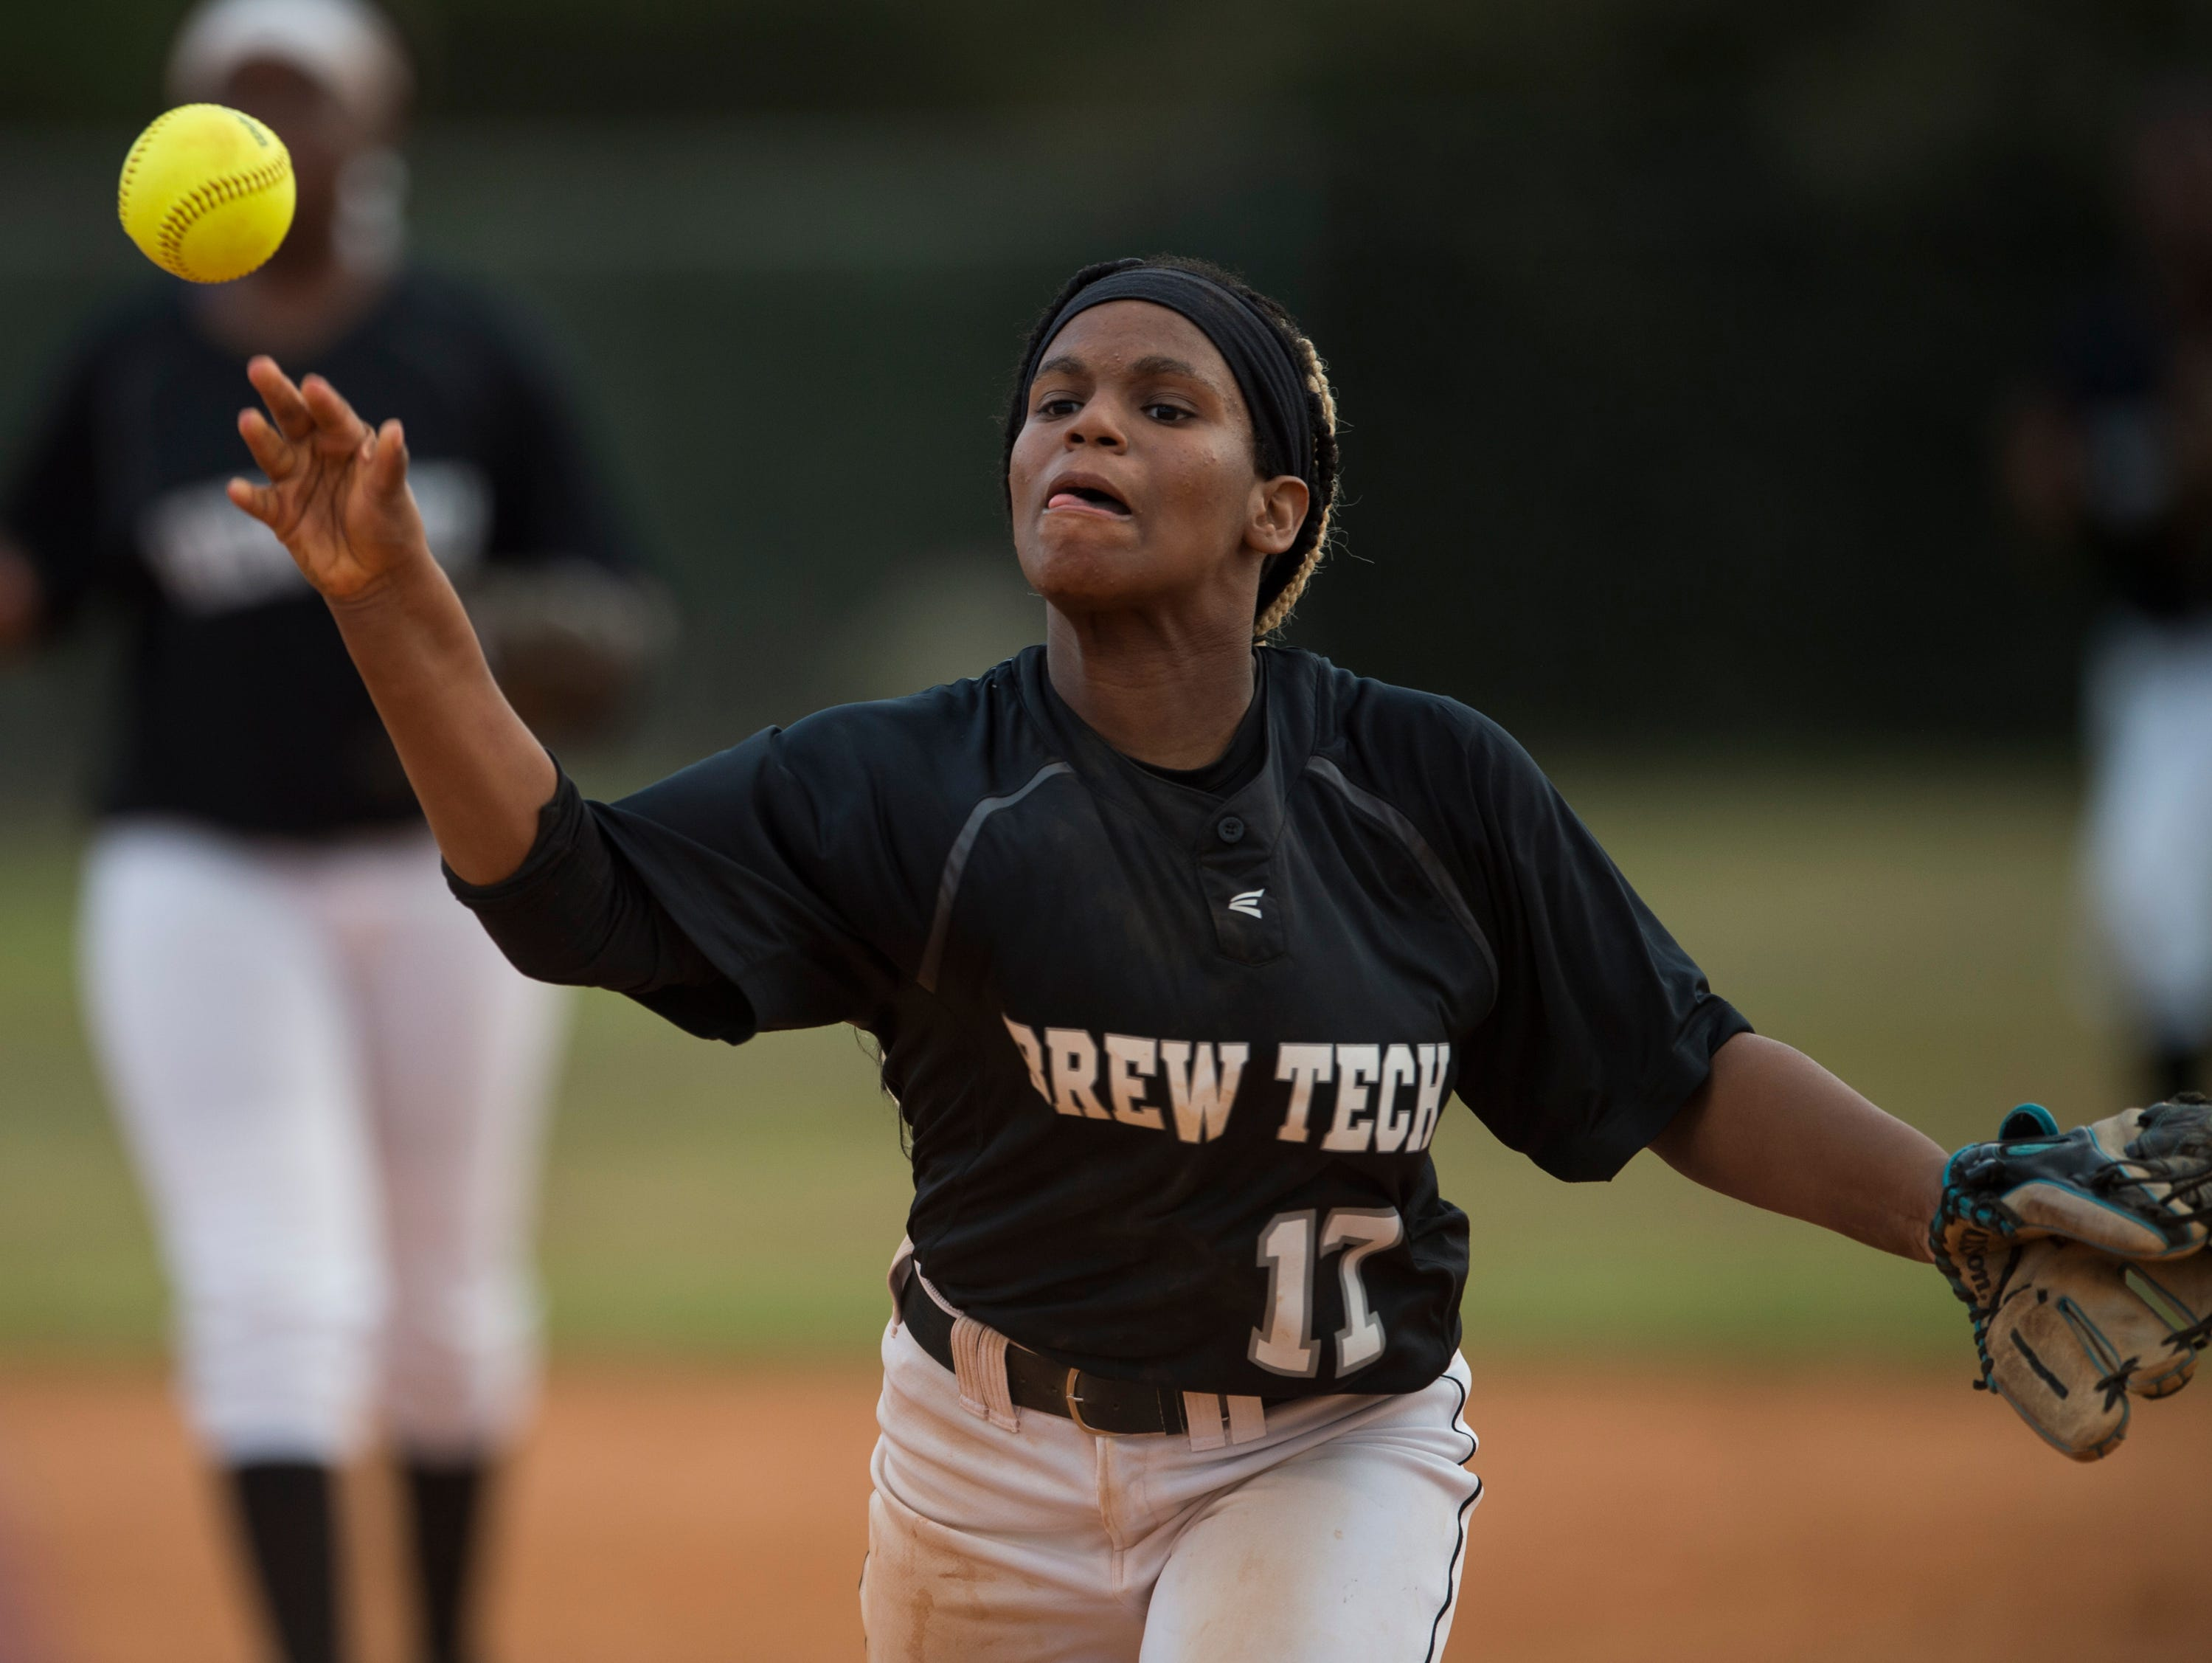 Brew Tech's Erica Ellis (17) throws to first base at Thompson Park in Montgomery, Ala., on Thursday, March 14, 2019. Tallassee defeated Brew Tech 7-0.